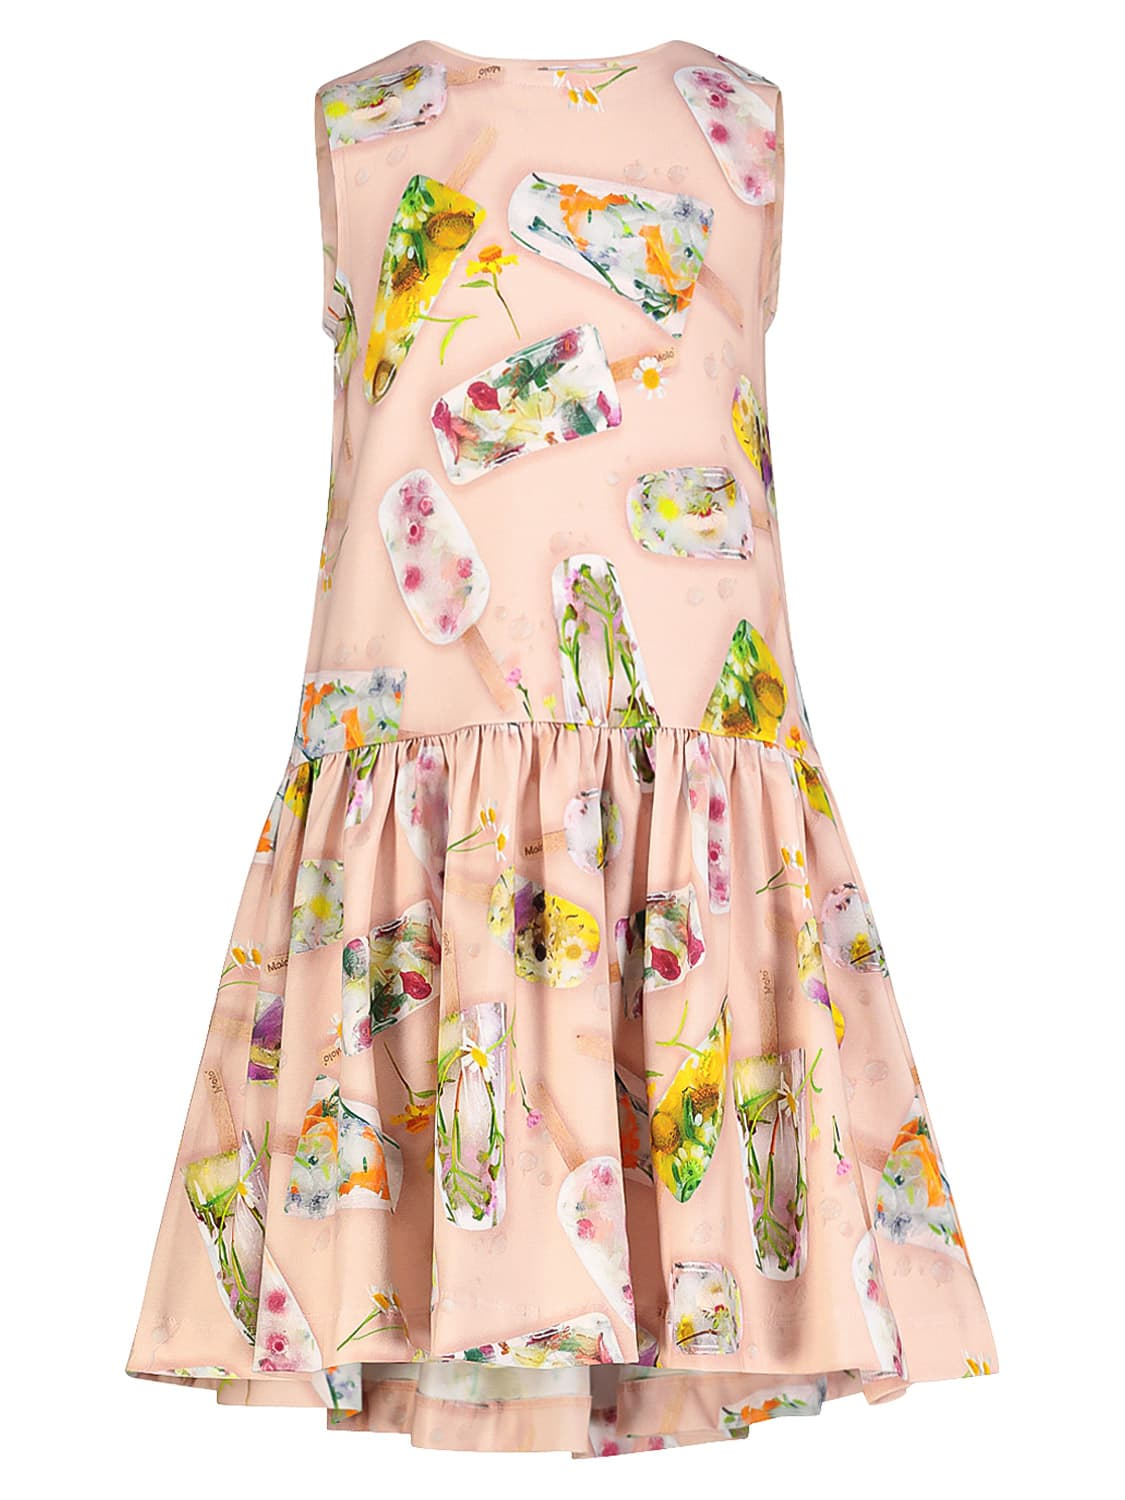 Molo Cottons KIDS DRESS CANDECE FOR GIRLS